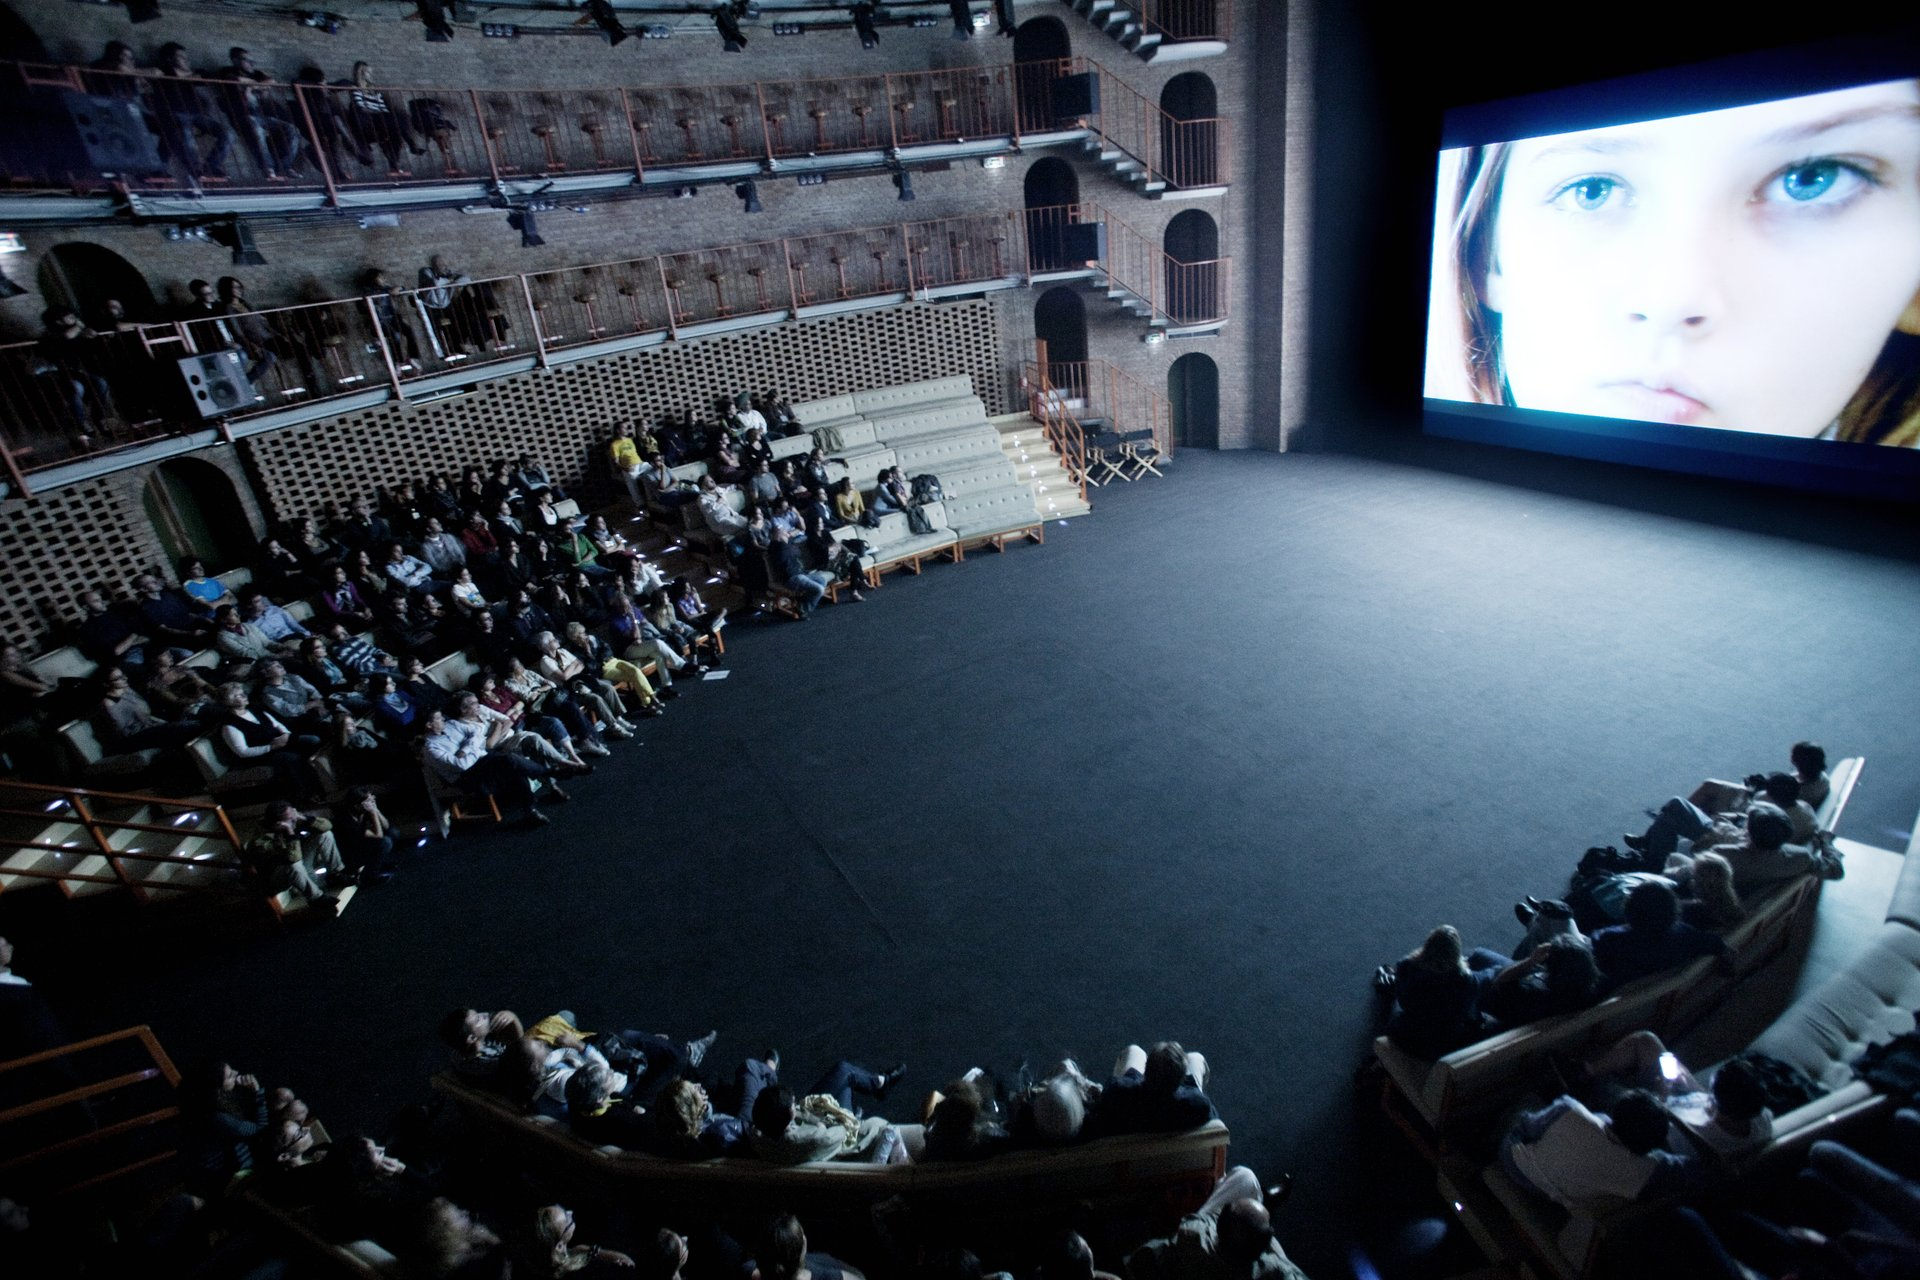 Best time for Milano Film Festival (MFF) in Milan 2020